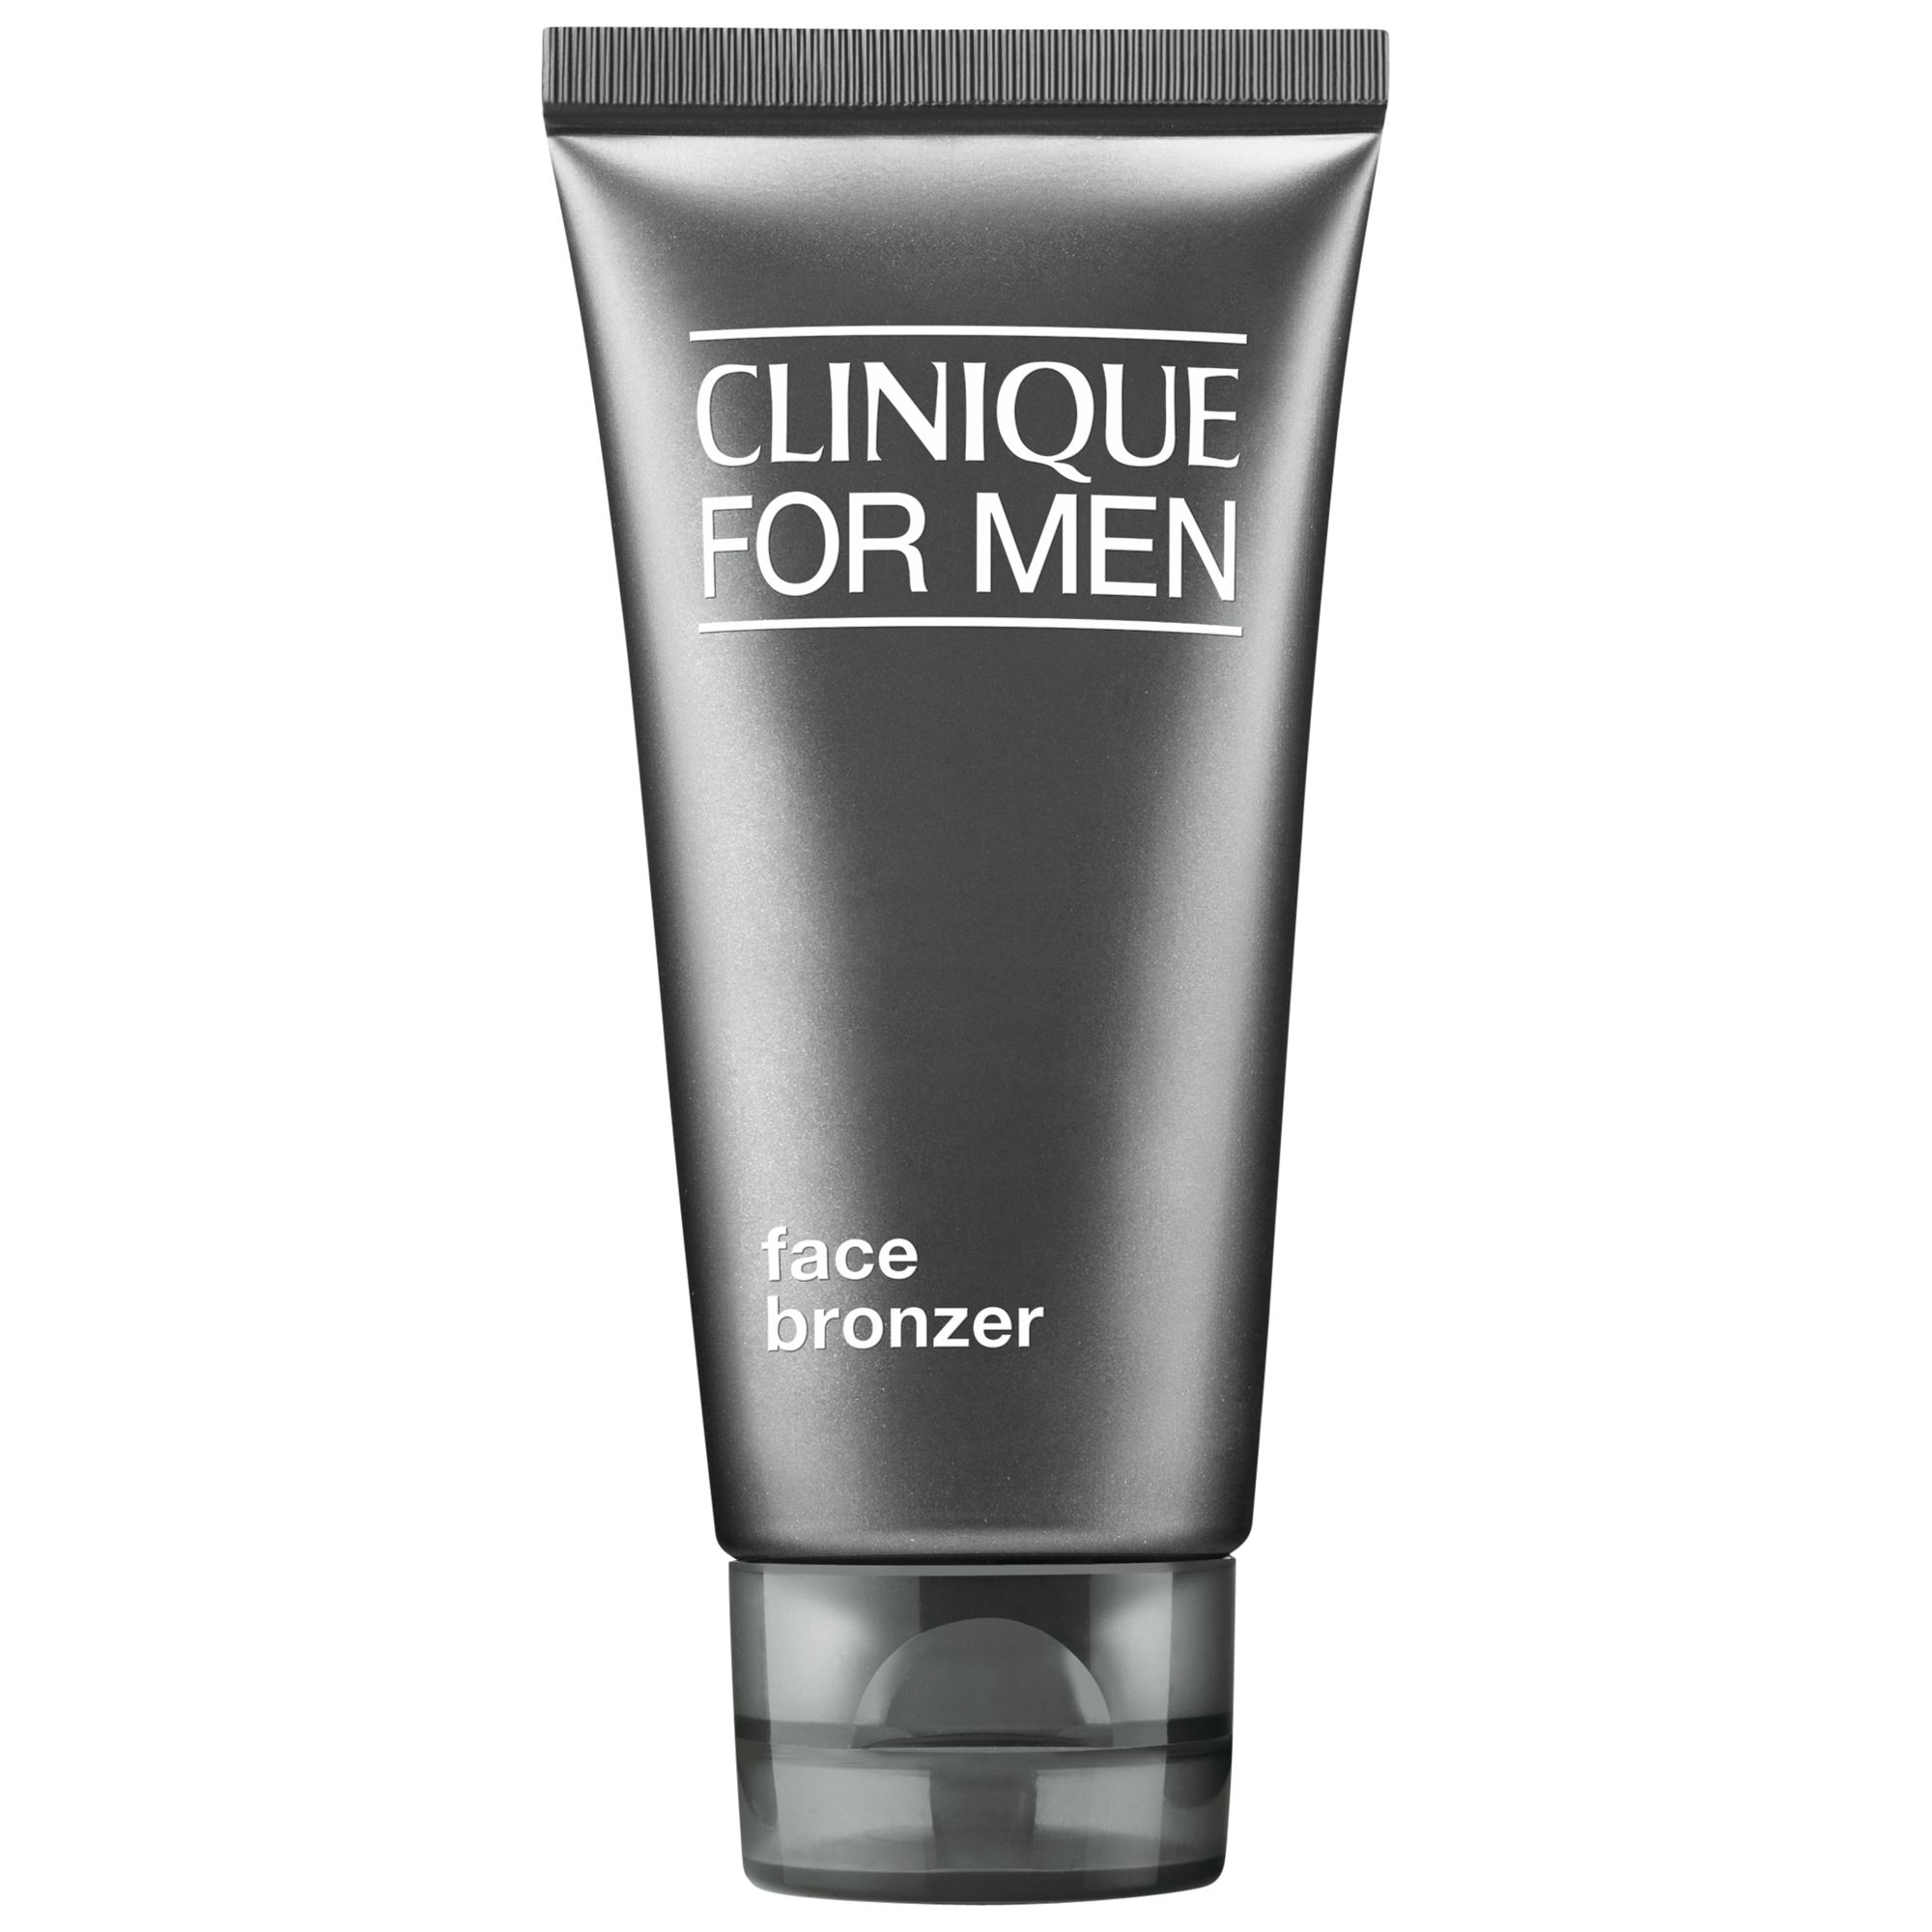 CLINIQUE FOR MEN face bronzer 60ml